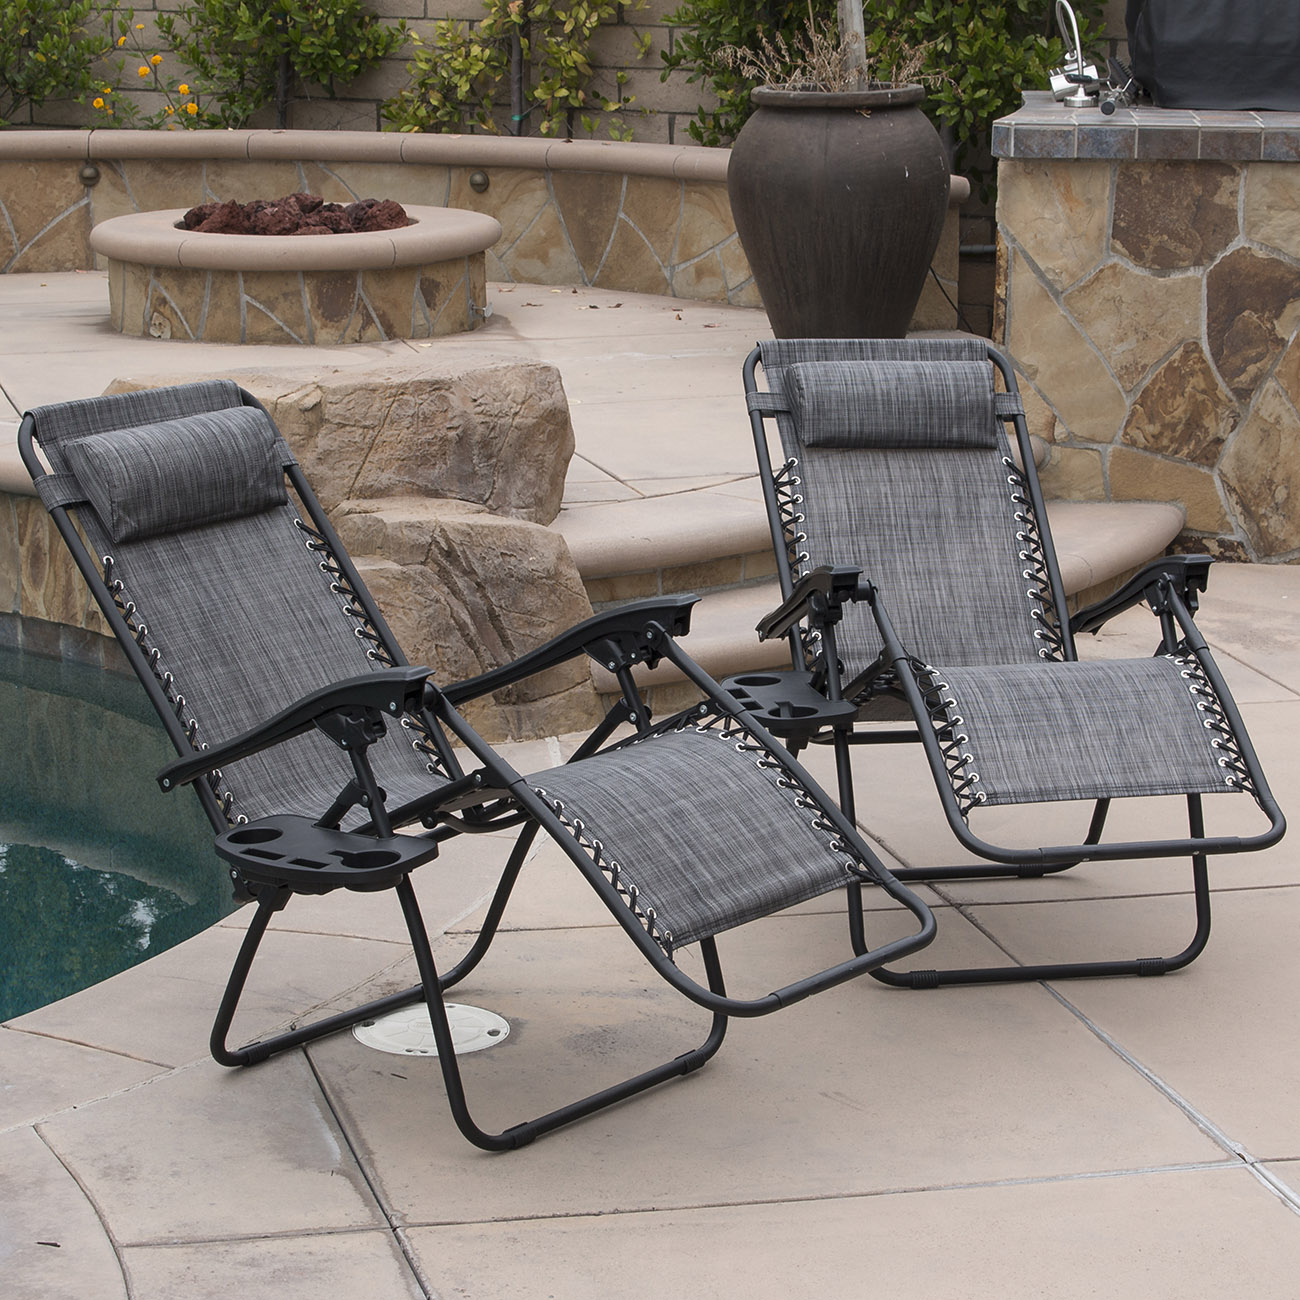 zero gravity chair 2 pack windsor seat cushions a 014 hg 14078 belleze patio lounge chairs cup holder utility tray gray